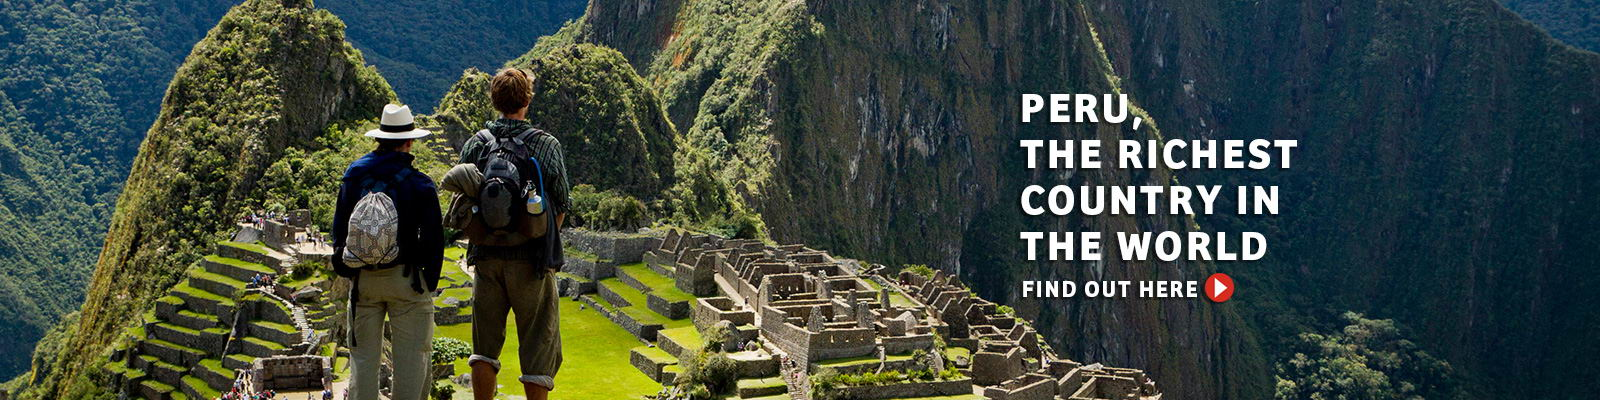 peru travel information and vacations guide i peru travel